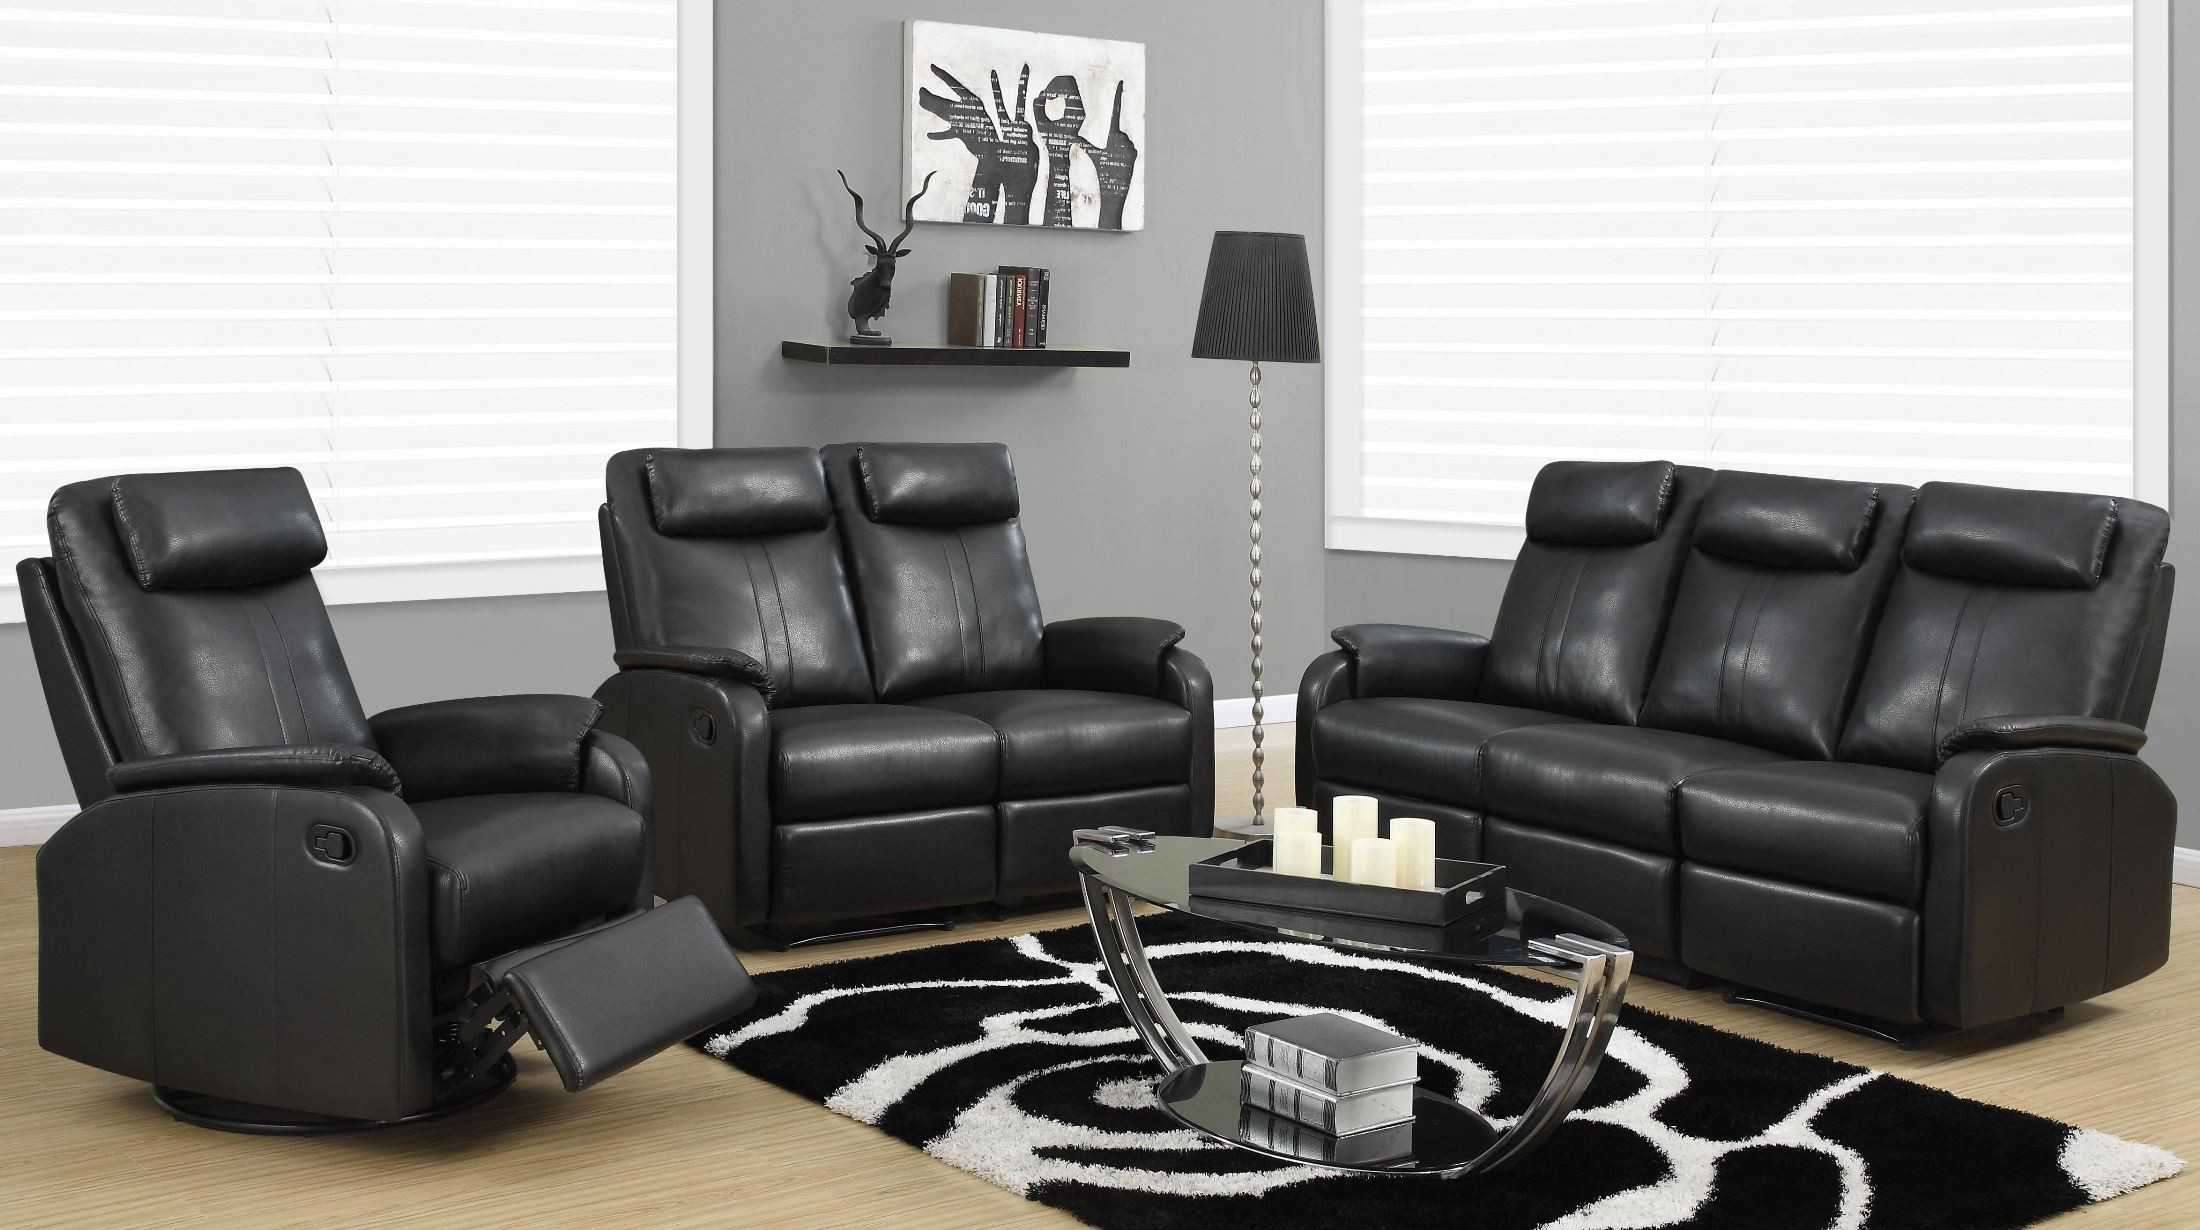 81bk 3 black bonded leather reclining living room set 81bk 3 monarch. Black Bedroom Furniture Sets. Home Design Ideas